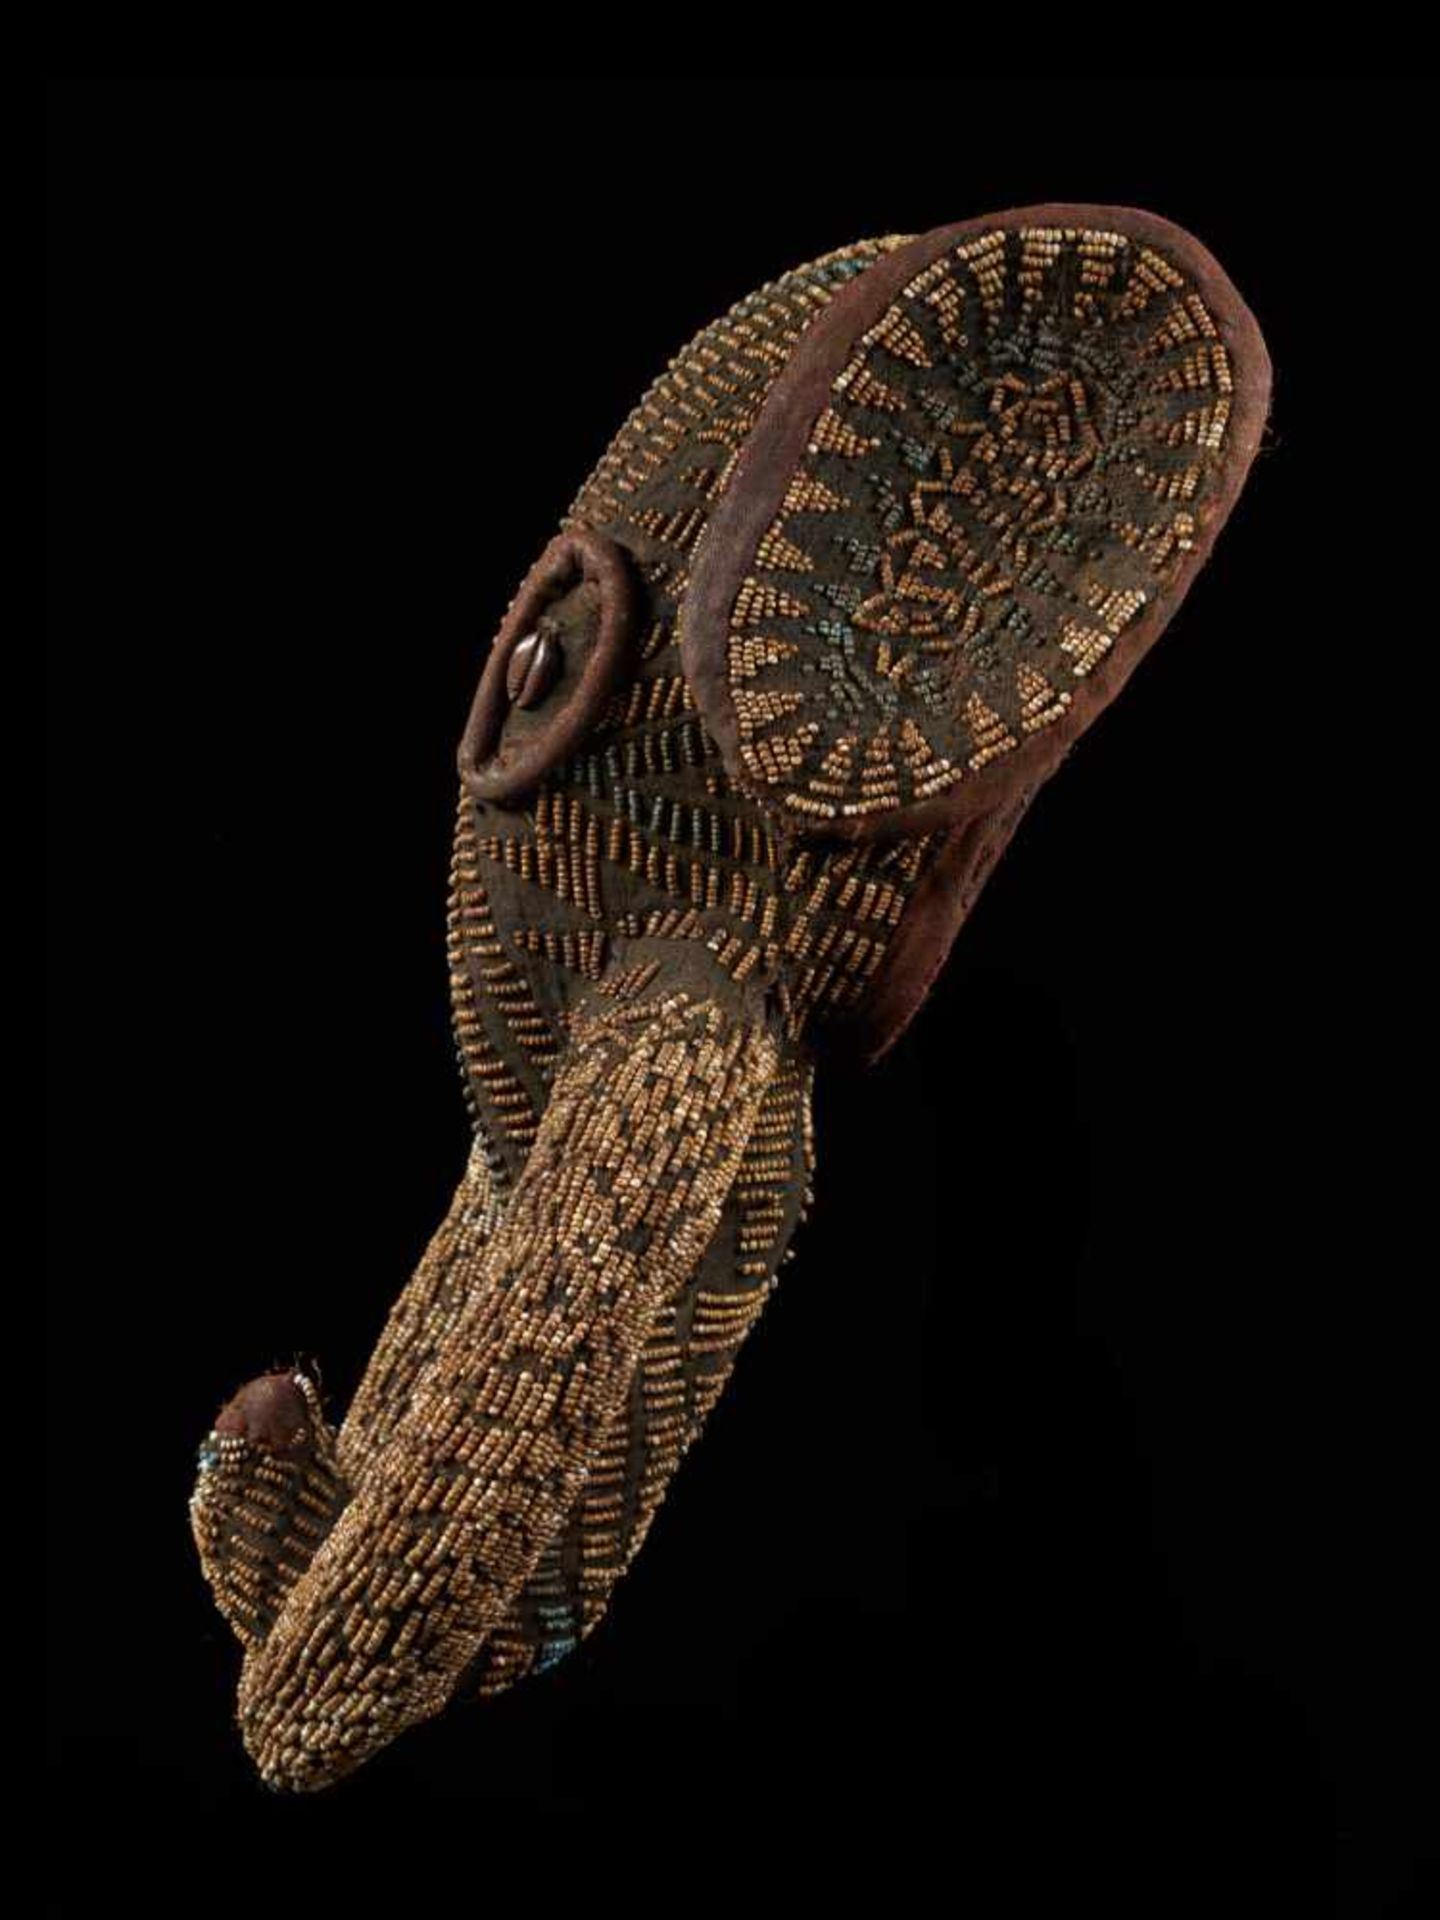 Beaded Small Elephant Mask - Tribal ArtAn enthralling elephant mask that is decorated with glass - Bild 7 aus 7